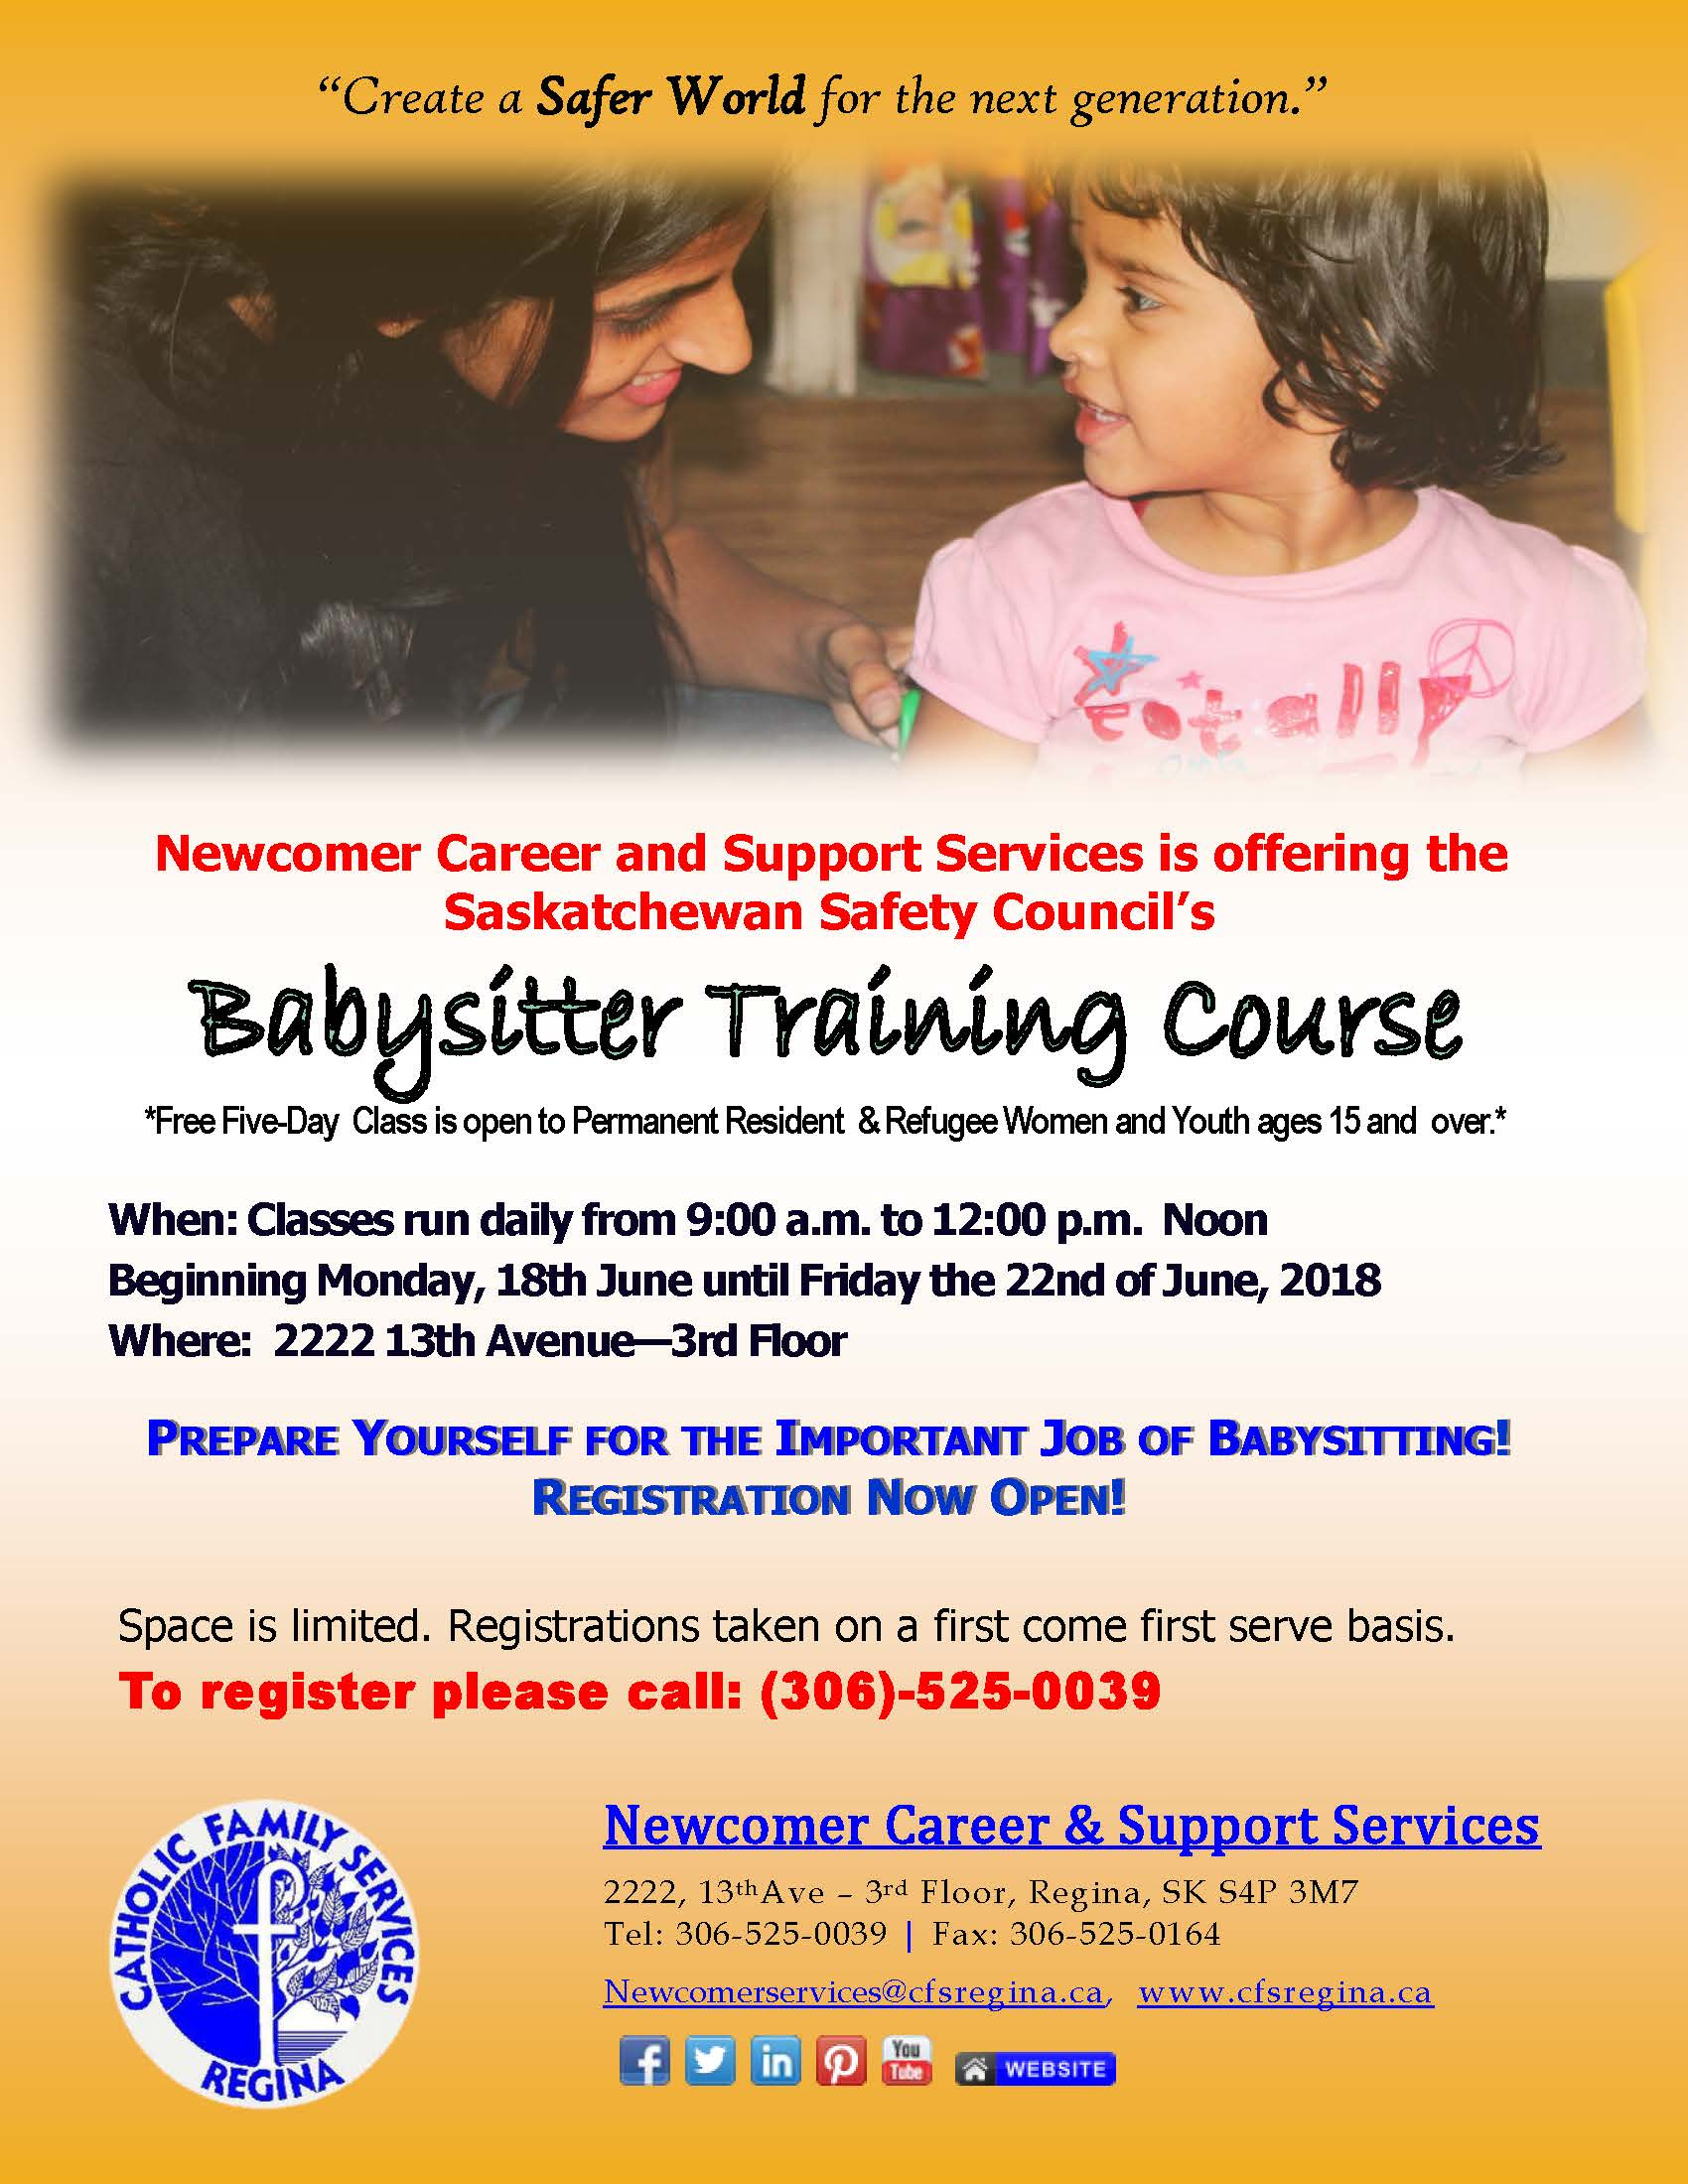 Free Training - Babysitting Course by Sask. Safety Council - at Newcomer Career and Support Services - Image 1